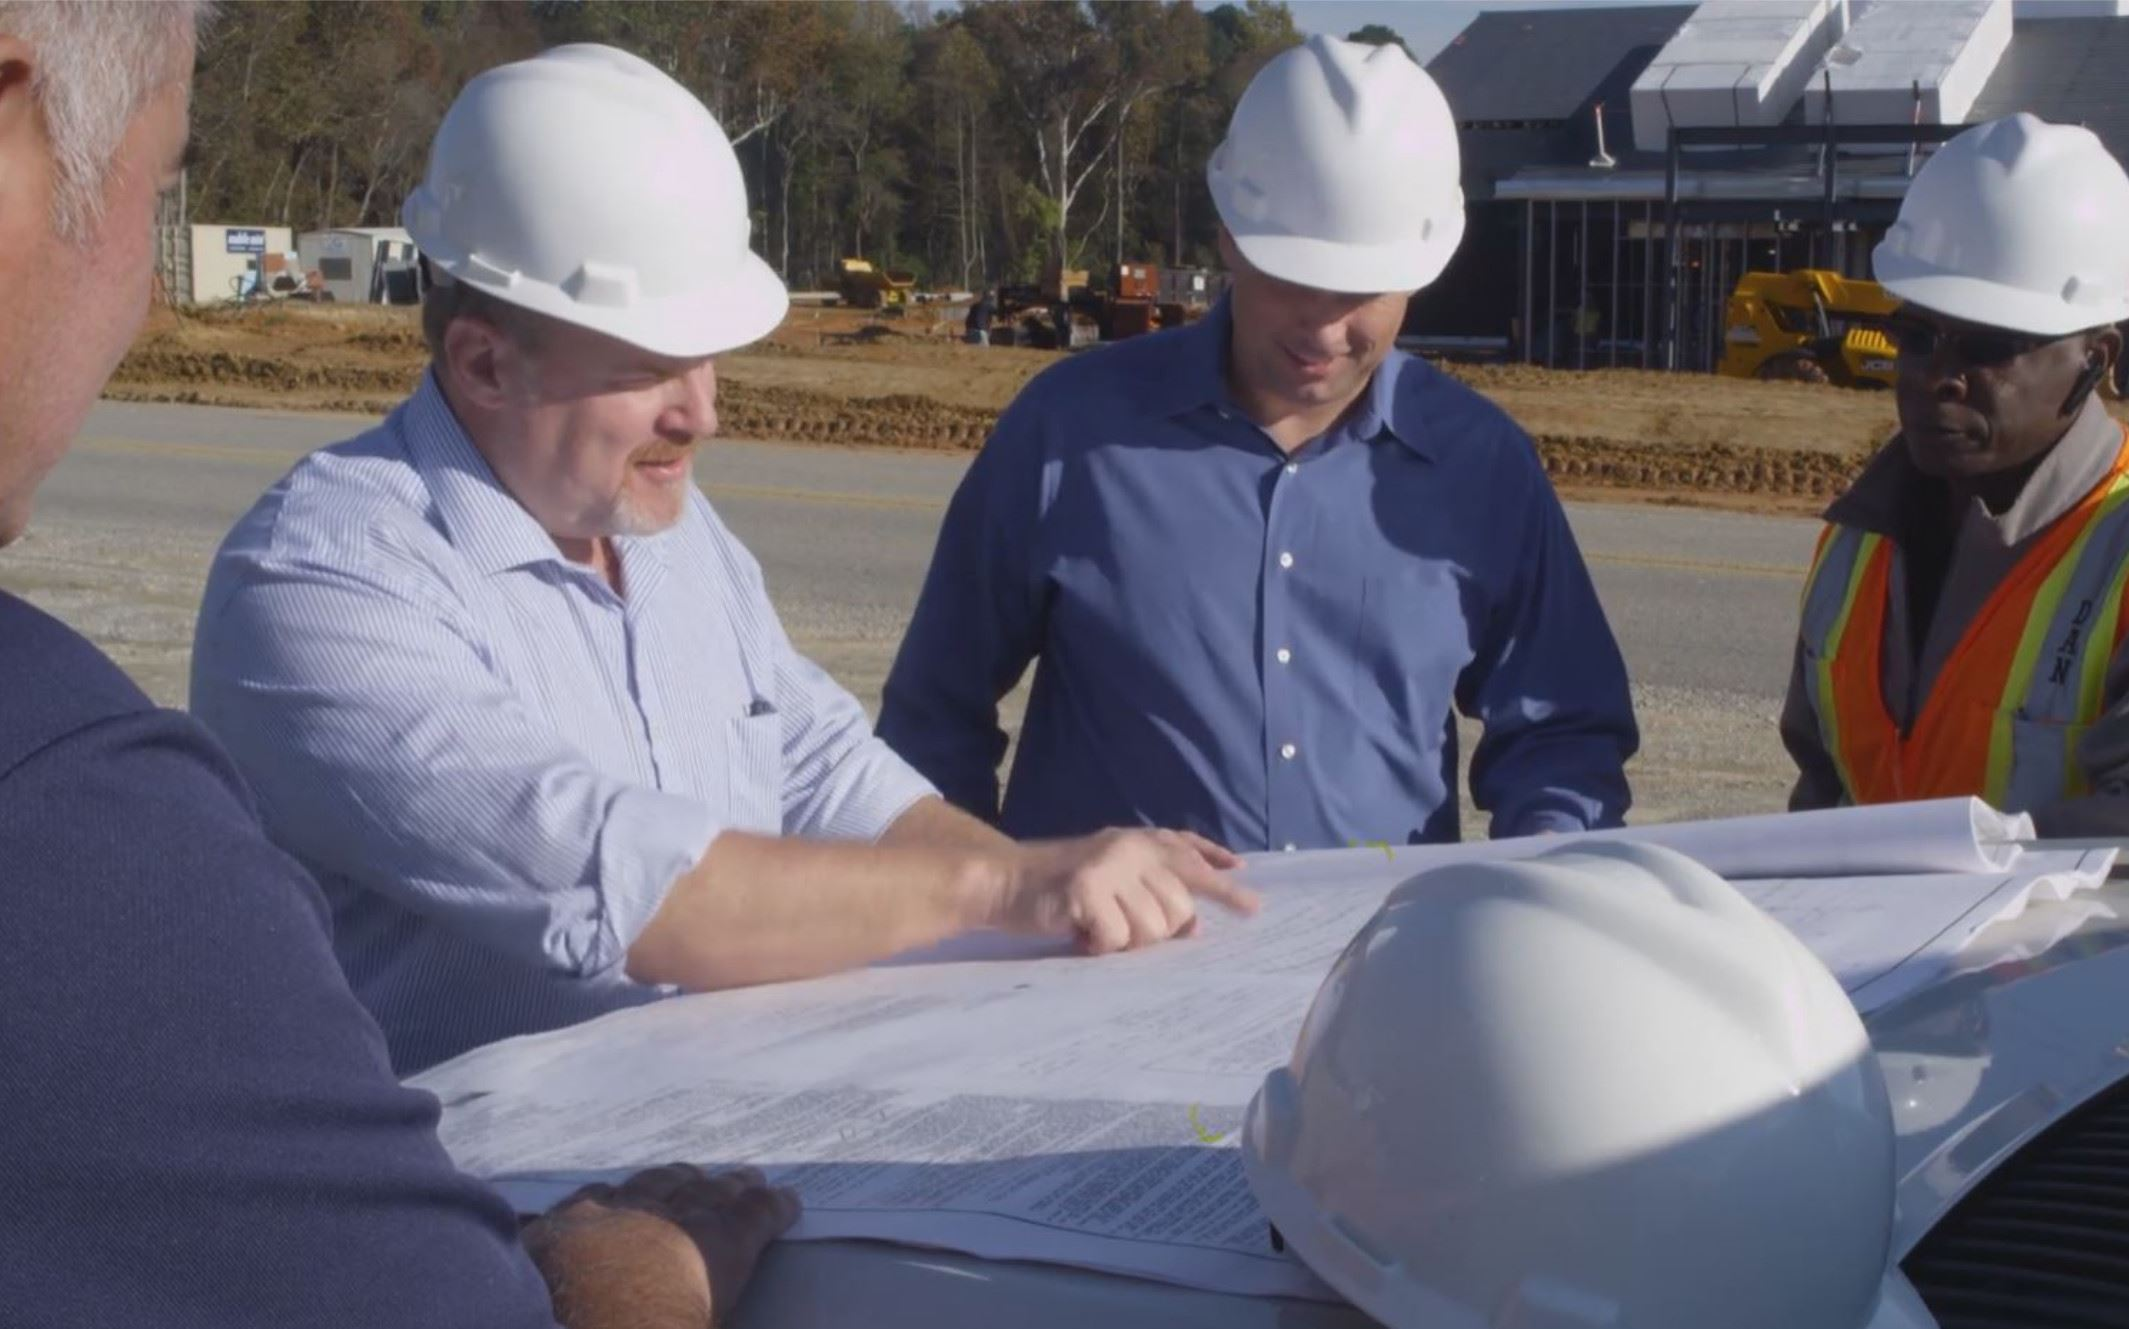 Town Engineers Looking At Engineering Plans on a Construction Site